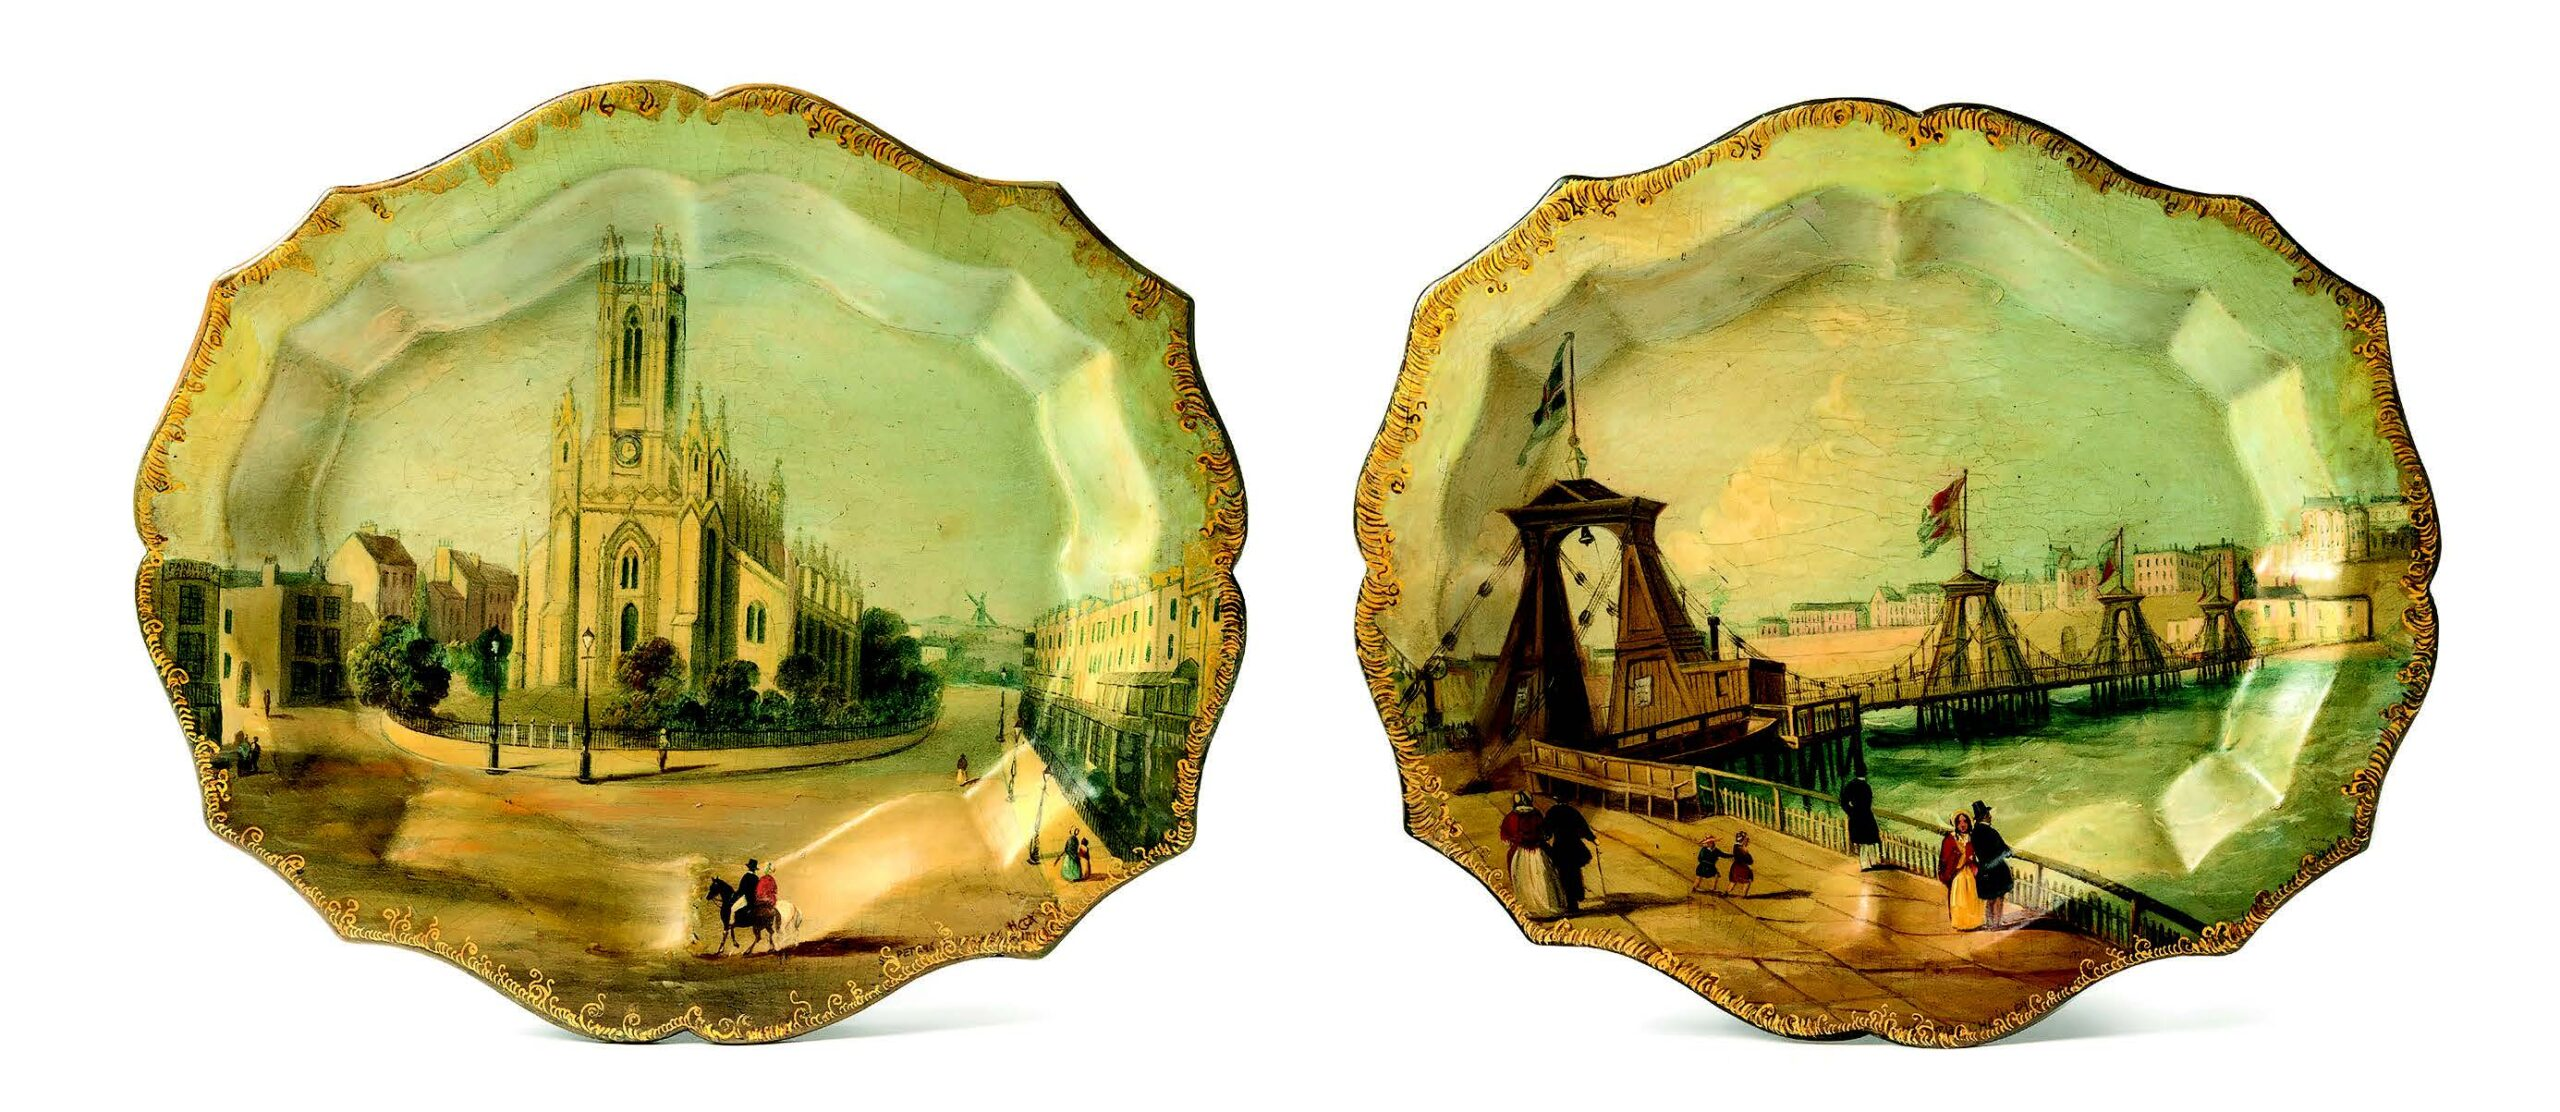 Views of Brighton, St Peter's Church & The Chain Pier. Each tray is signed by H.Cox